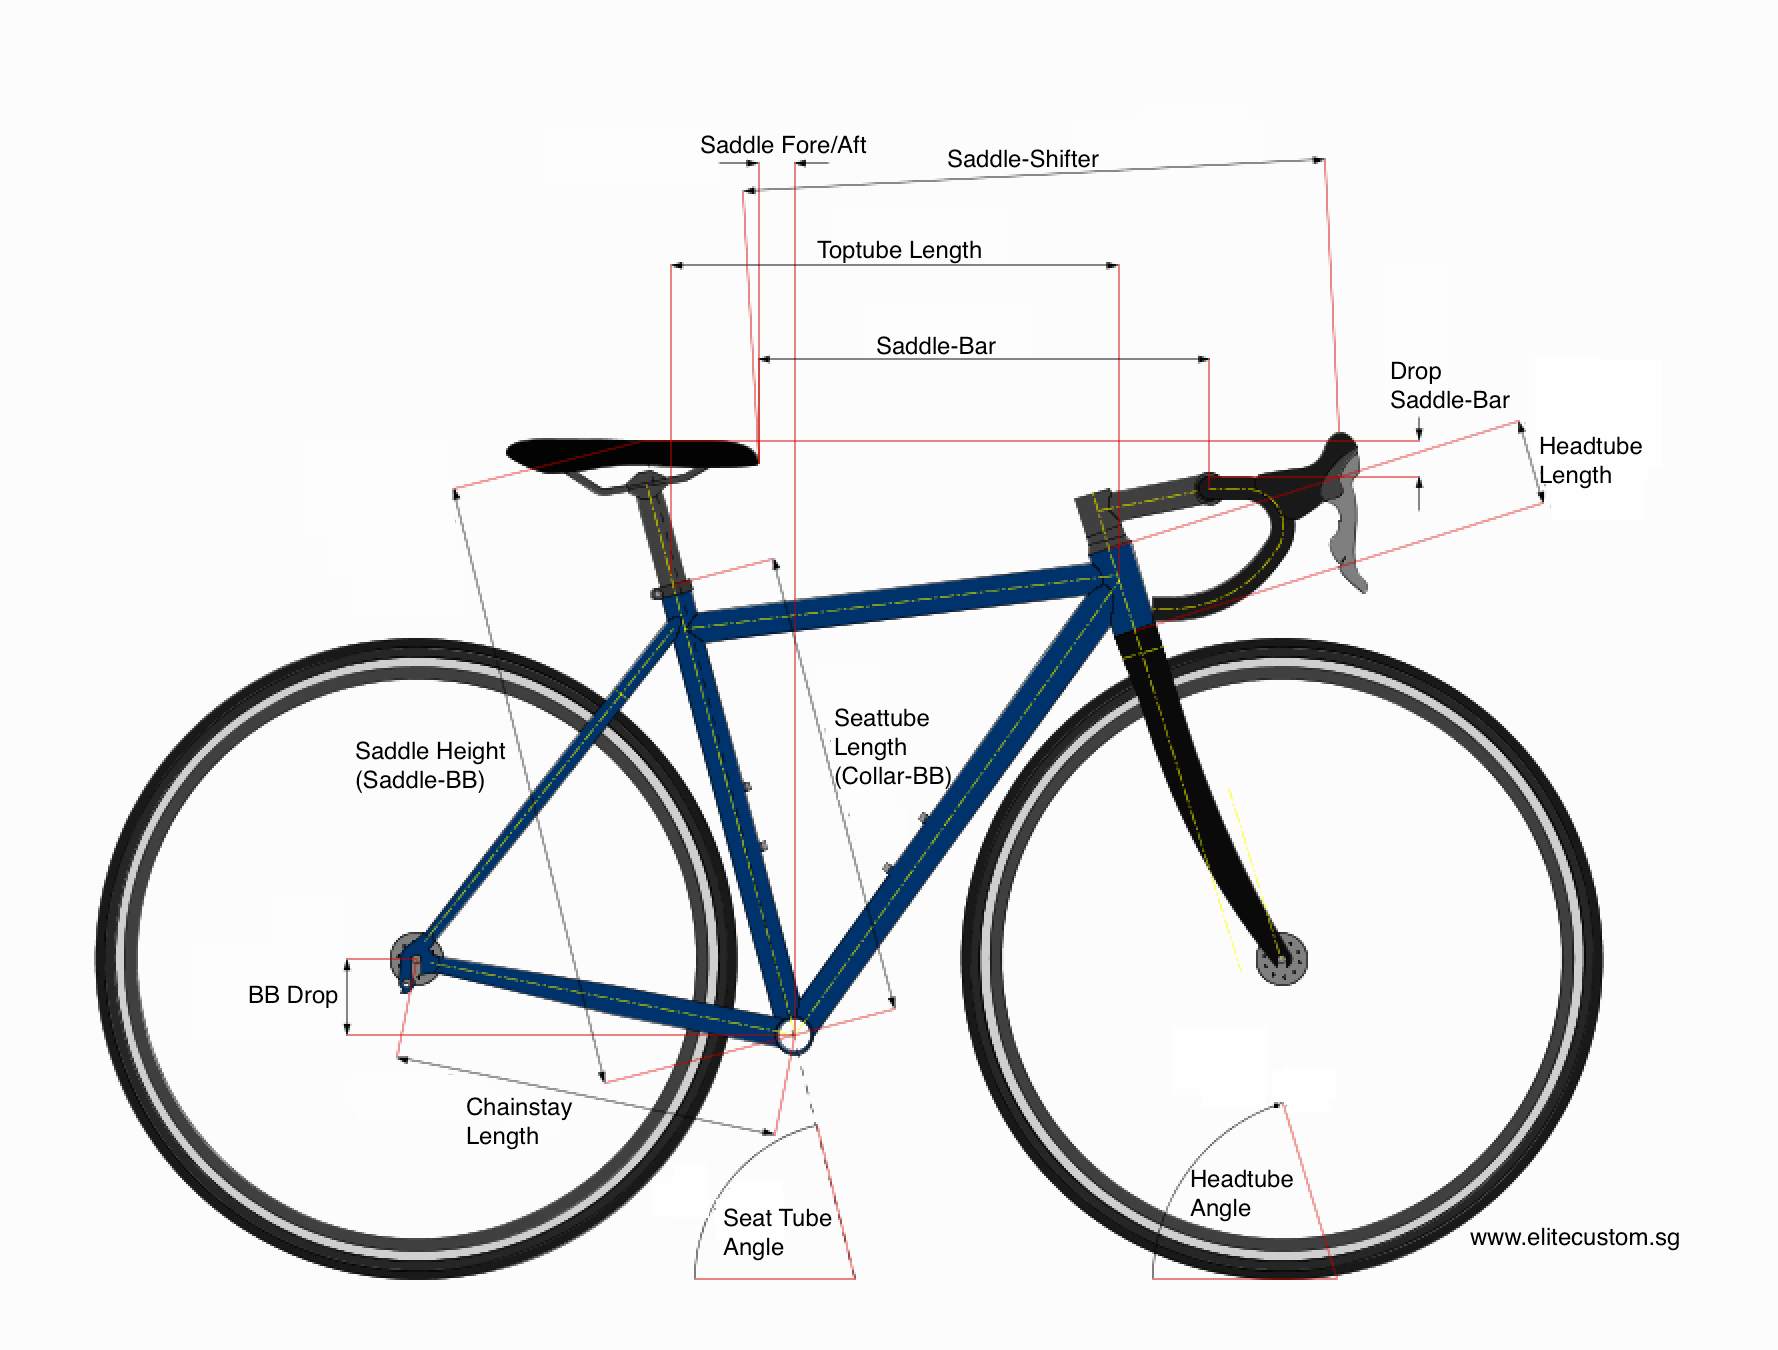 Elite Bicycle Fit Diagram